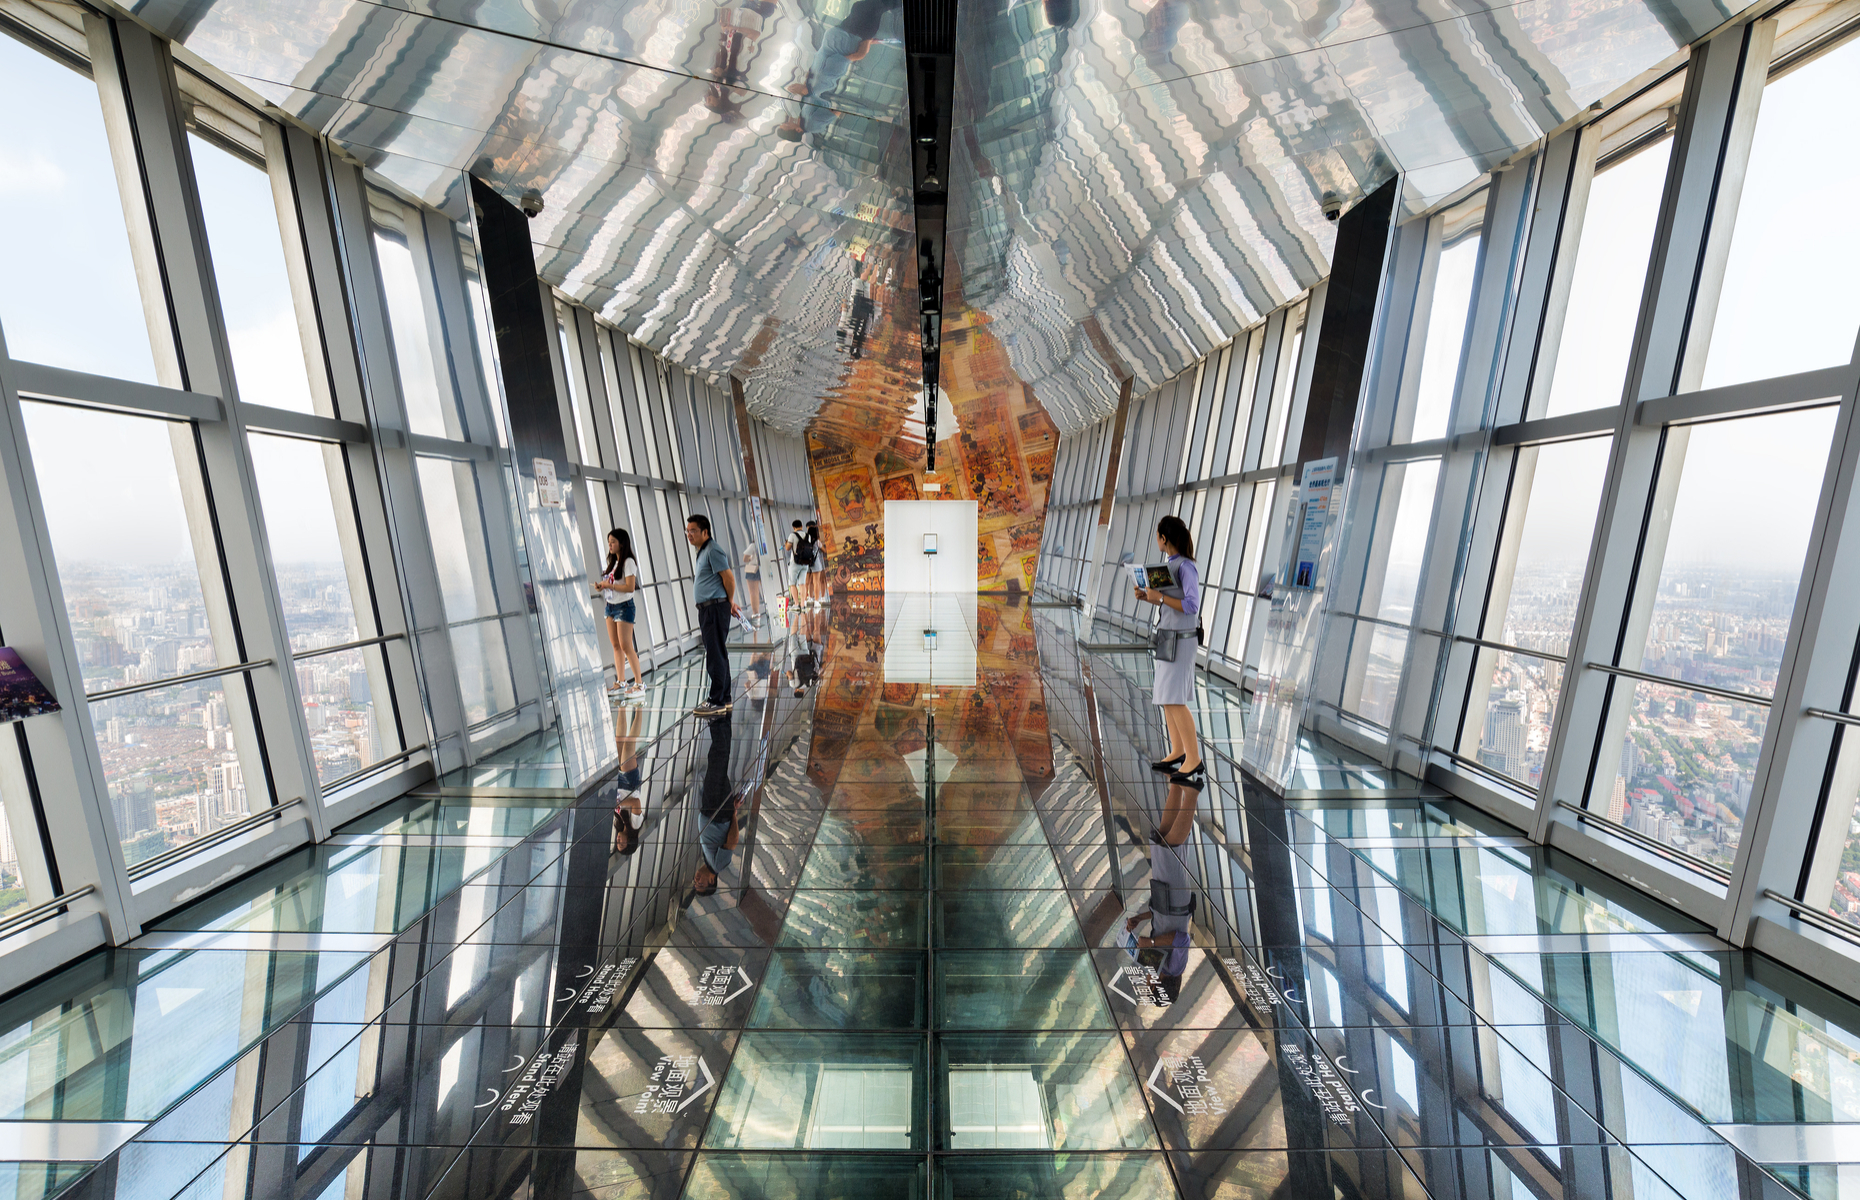 Slide 2 of 16: The Shanghai World Financial Center is currently the seventh‑highest building in the world. The 100th-floor observation deck is 474 metres (1,555 feet) above ground and has three transparent glass-floor walkways that show you Shanghai from a whole new perspective.